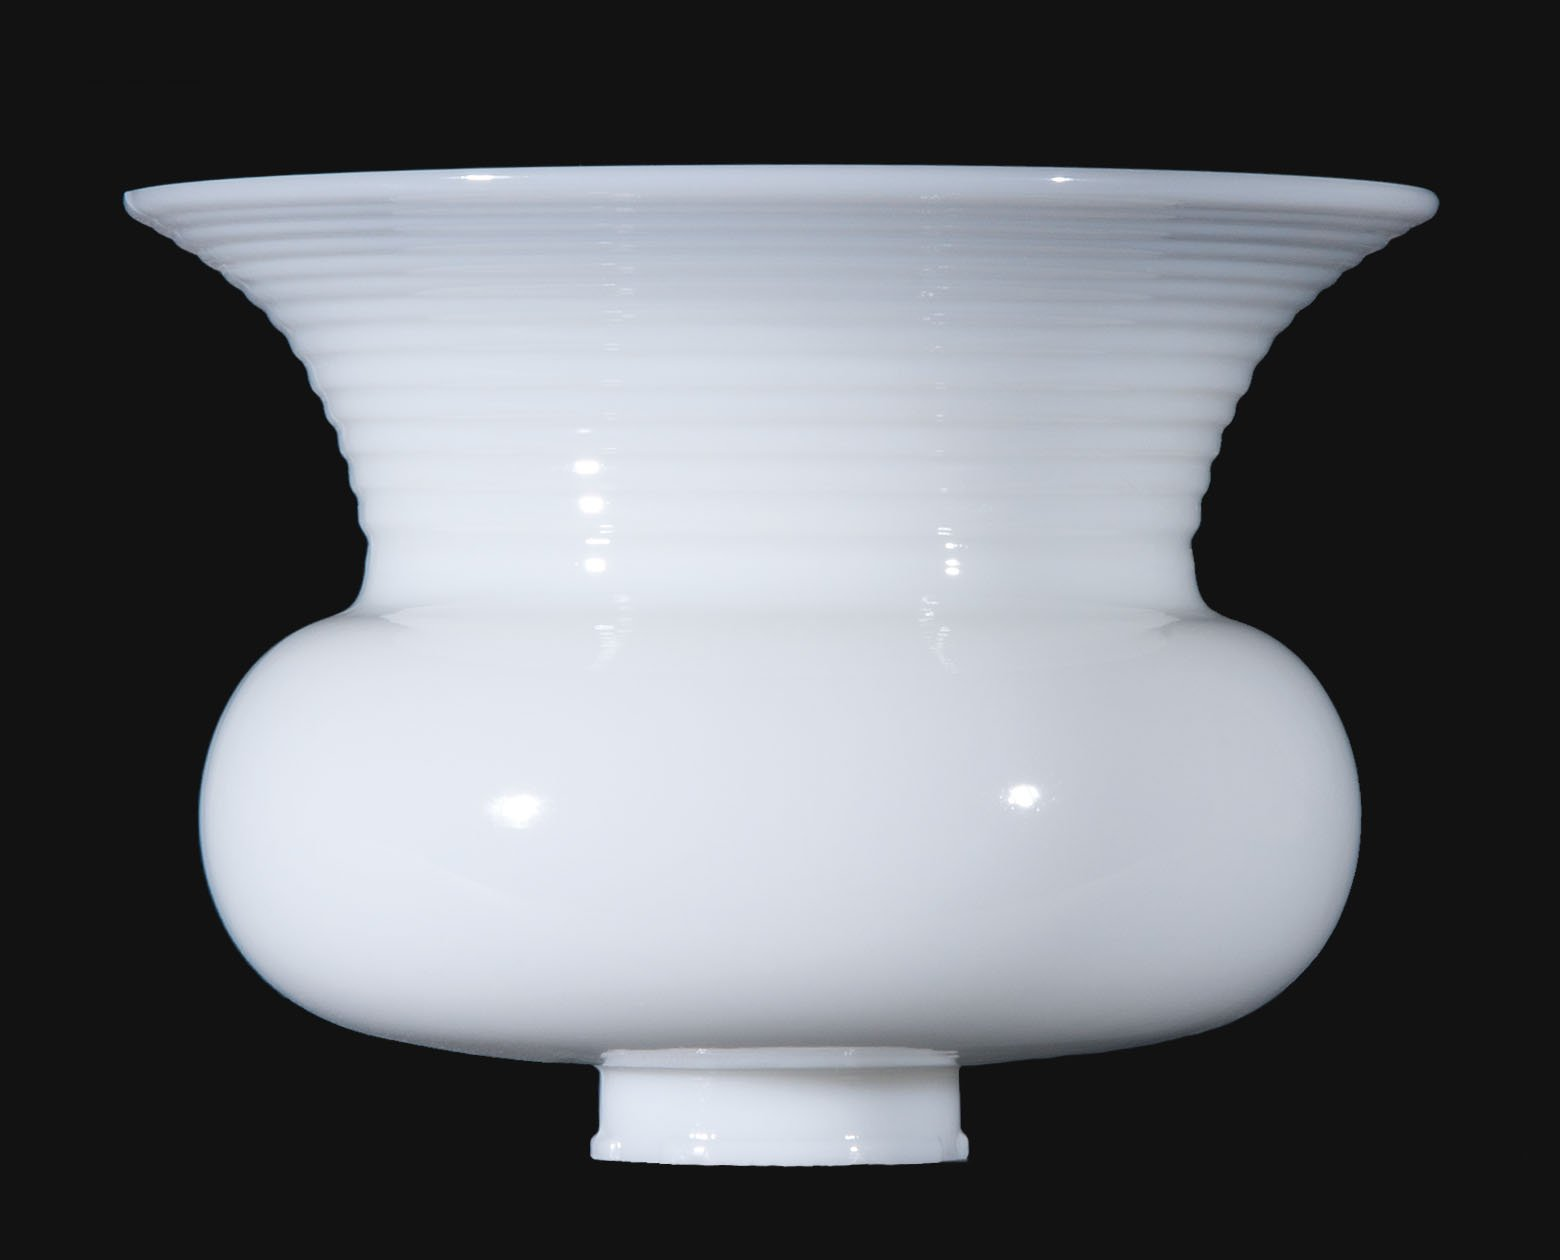 B&P Lamp 10'' Dia., Usa-Made Opal Glass Reflector